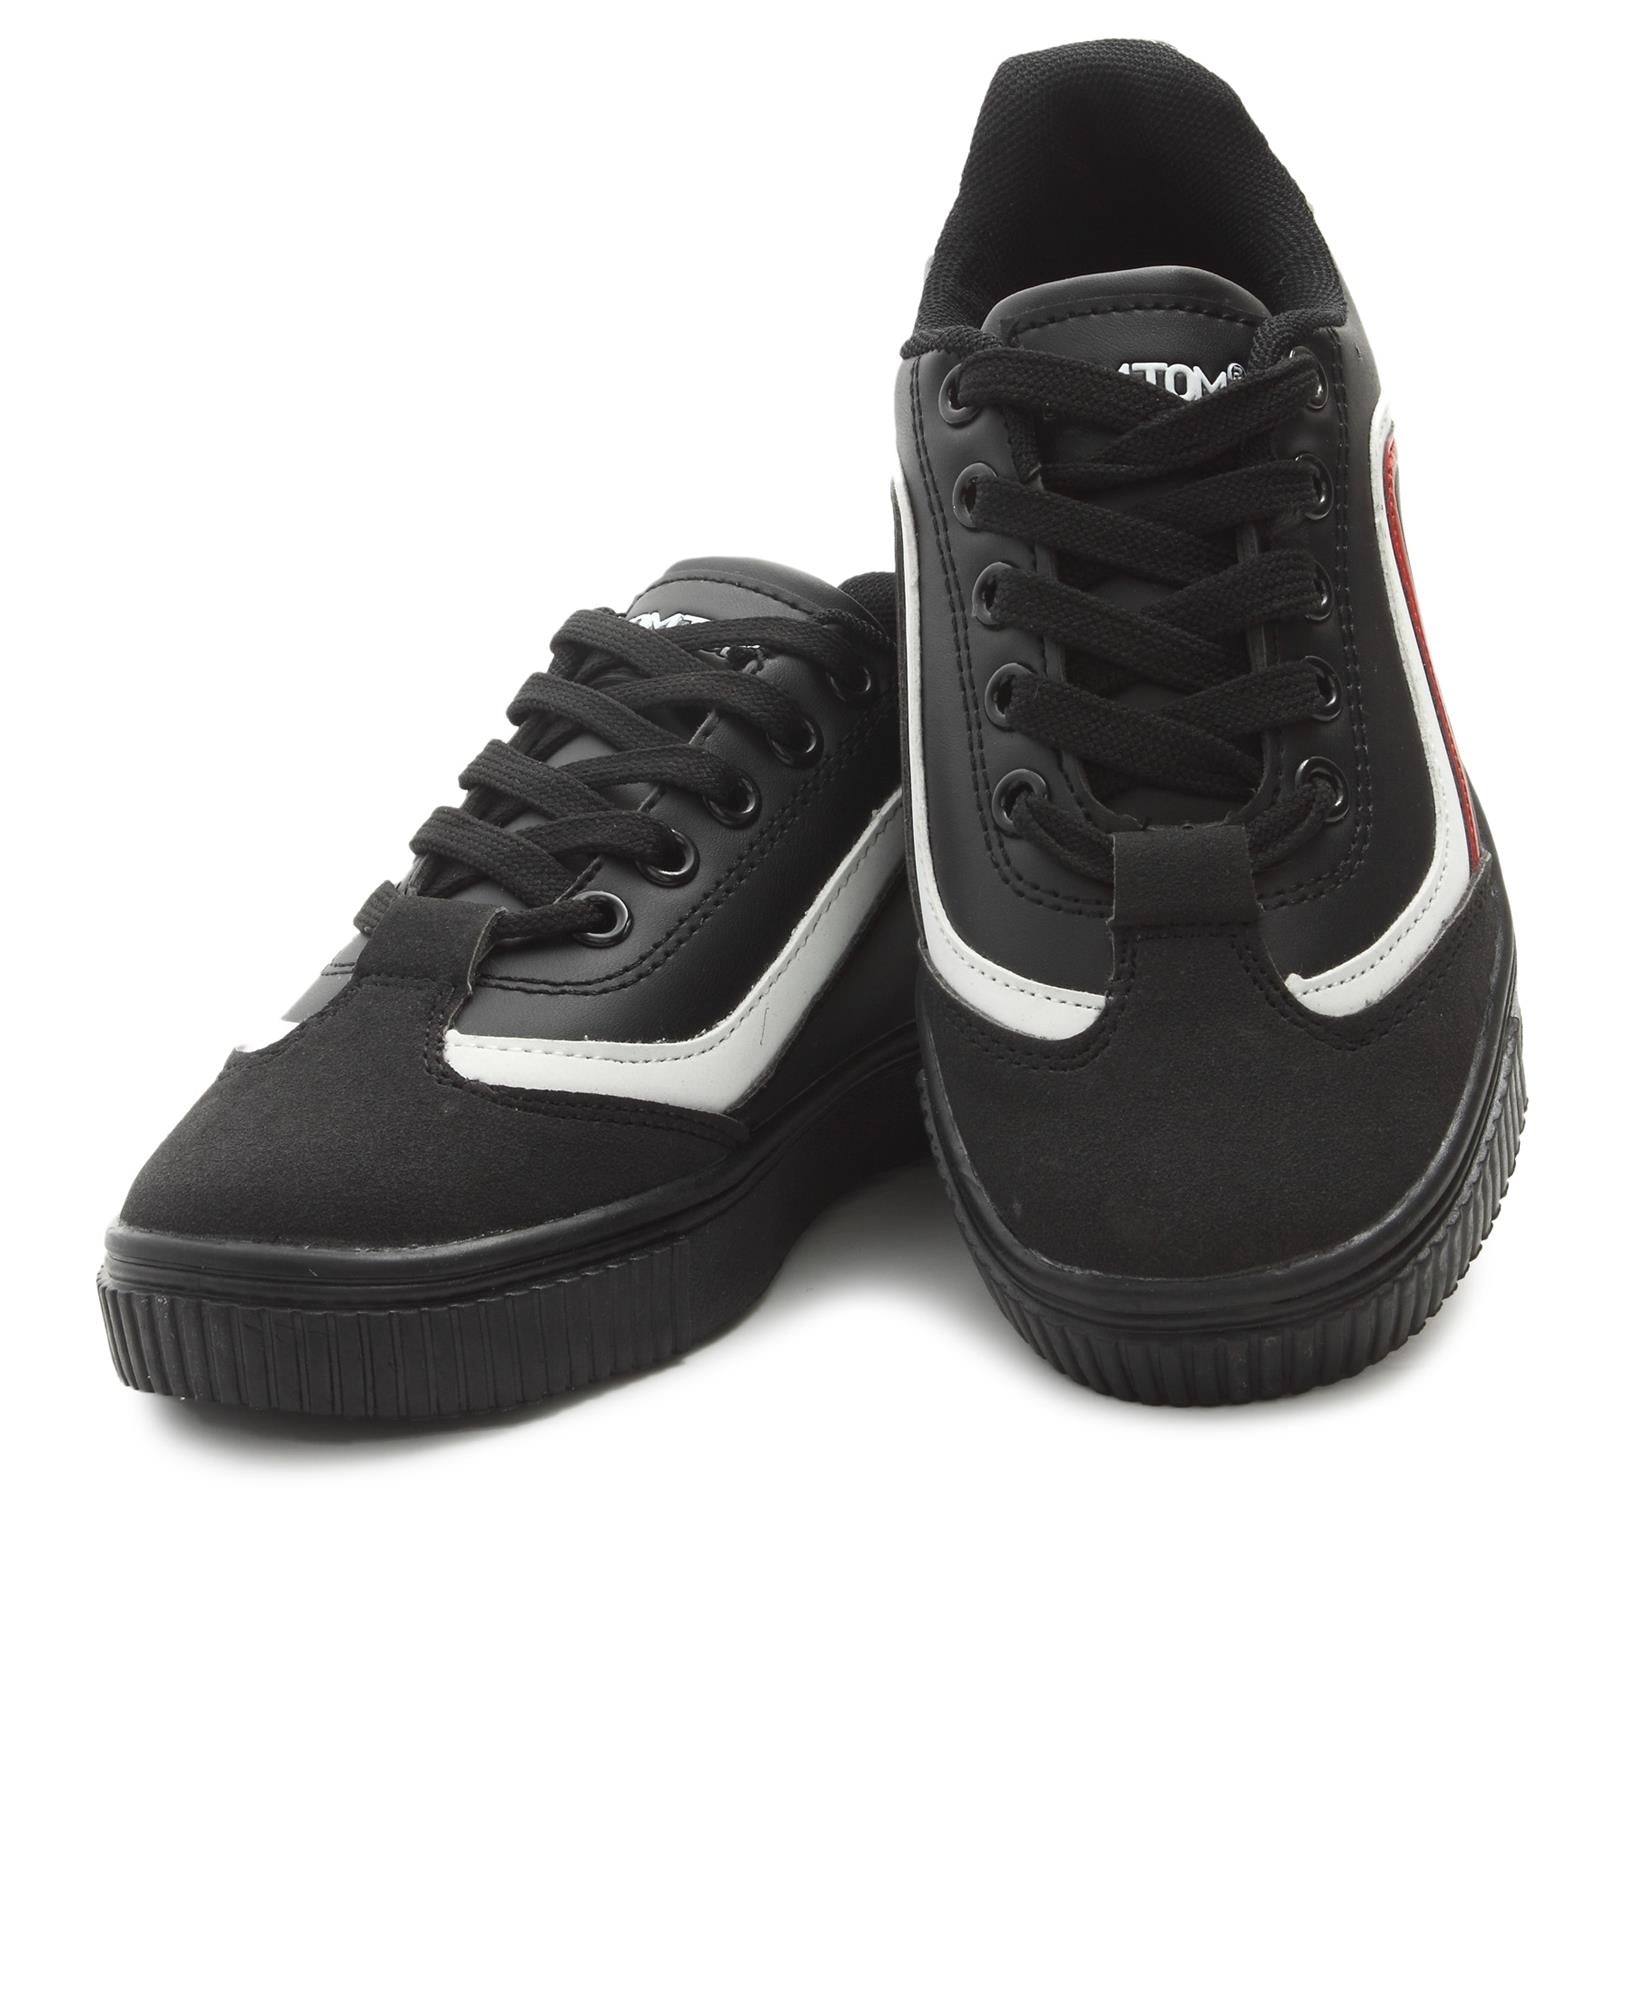 Youth Smooth Sneakers - Black